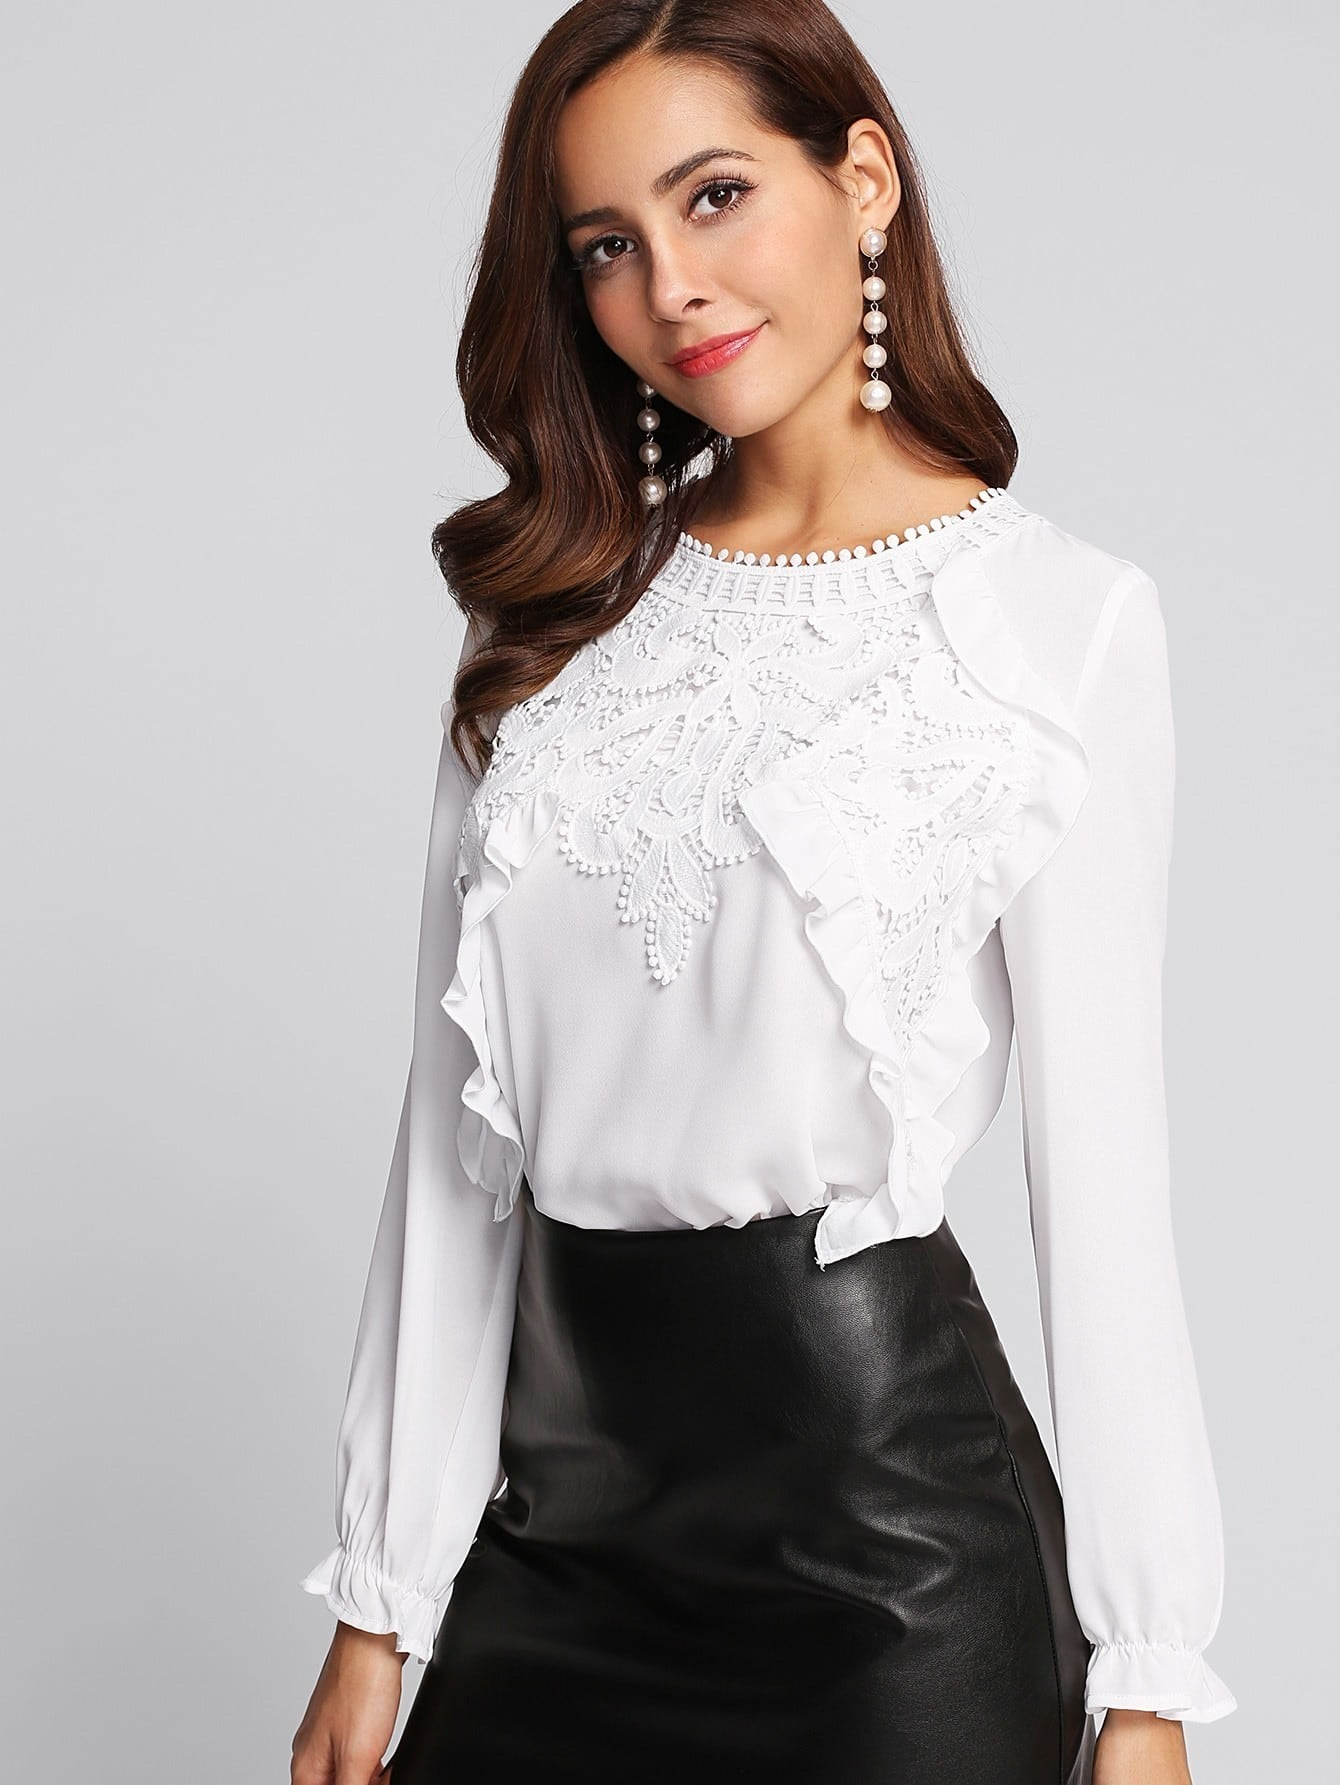 Applique Front Frilled Cuff Blouse fashionable front frilled chiffon blouse for women